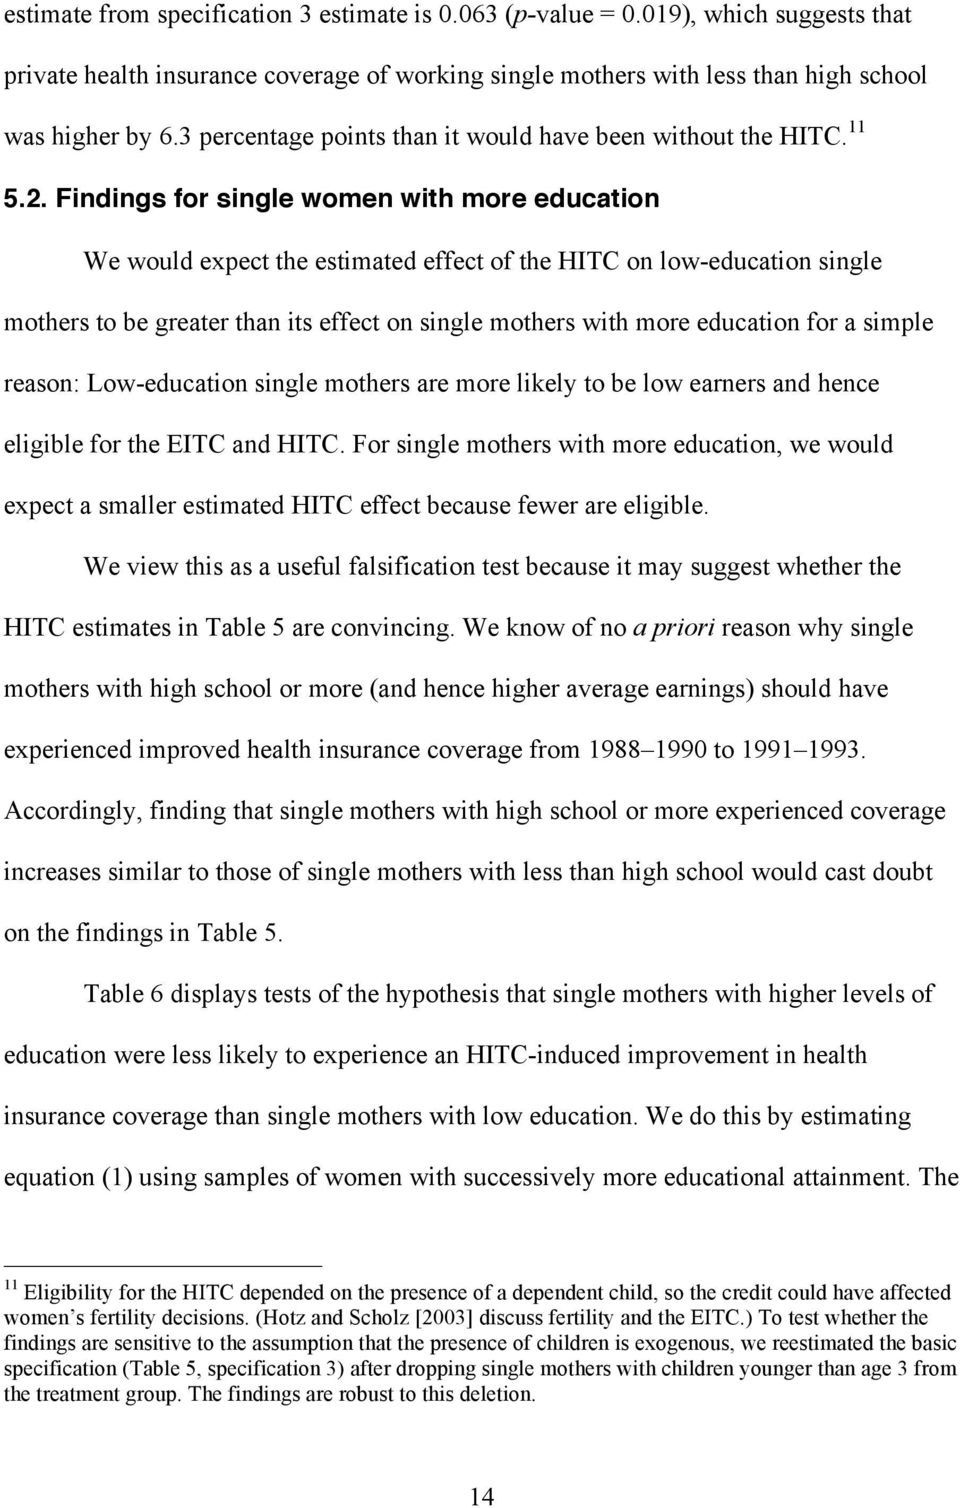 Findings for single women with more education We would expect the estimated effect of the HITC on low-education single mothers to be greater than its effect on single mothers with more education for